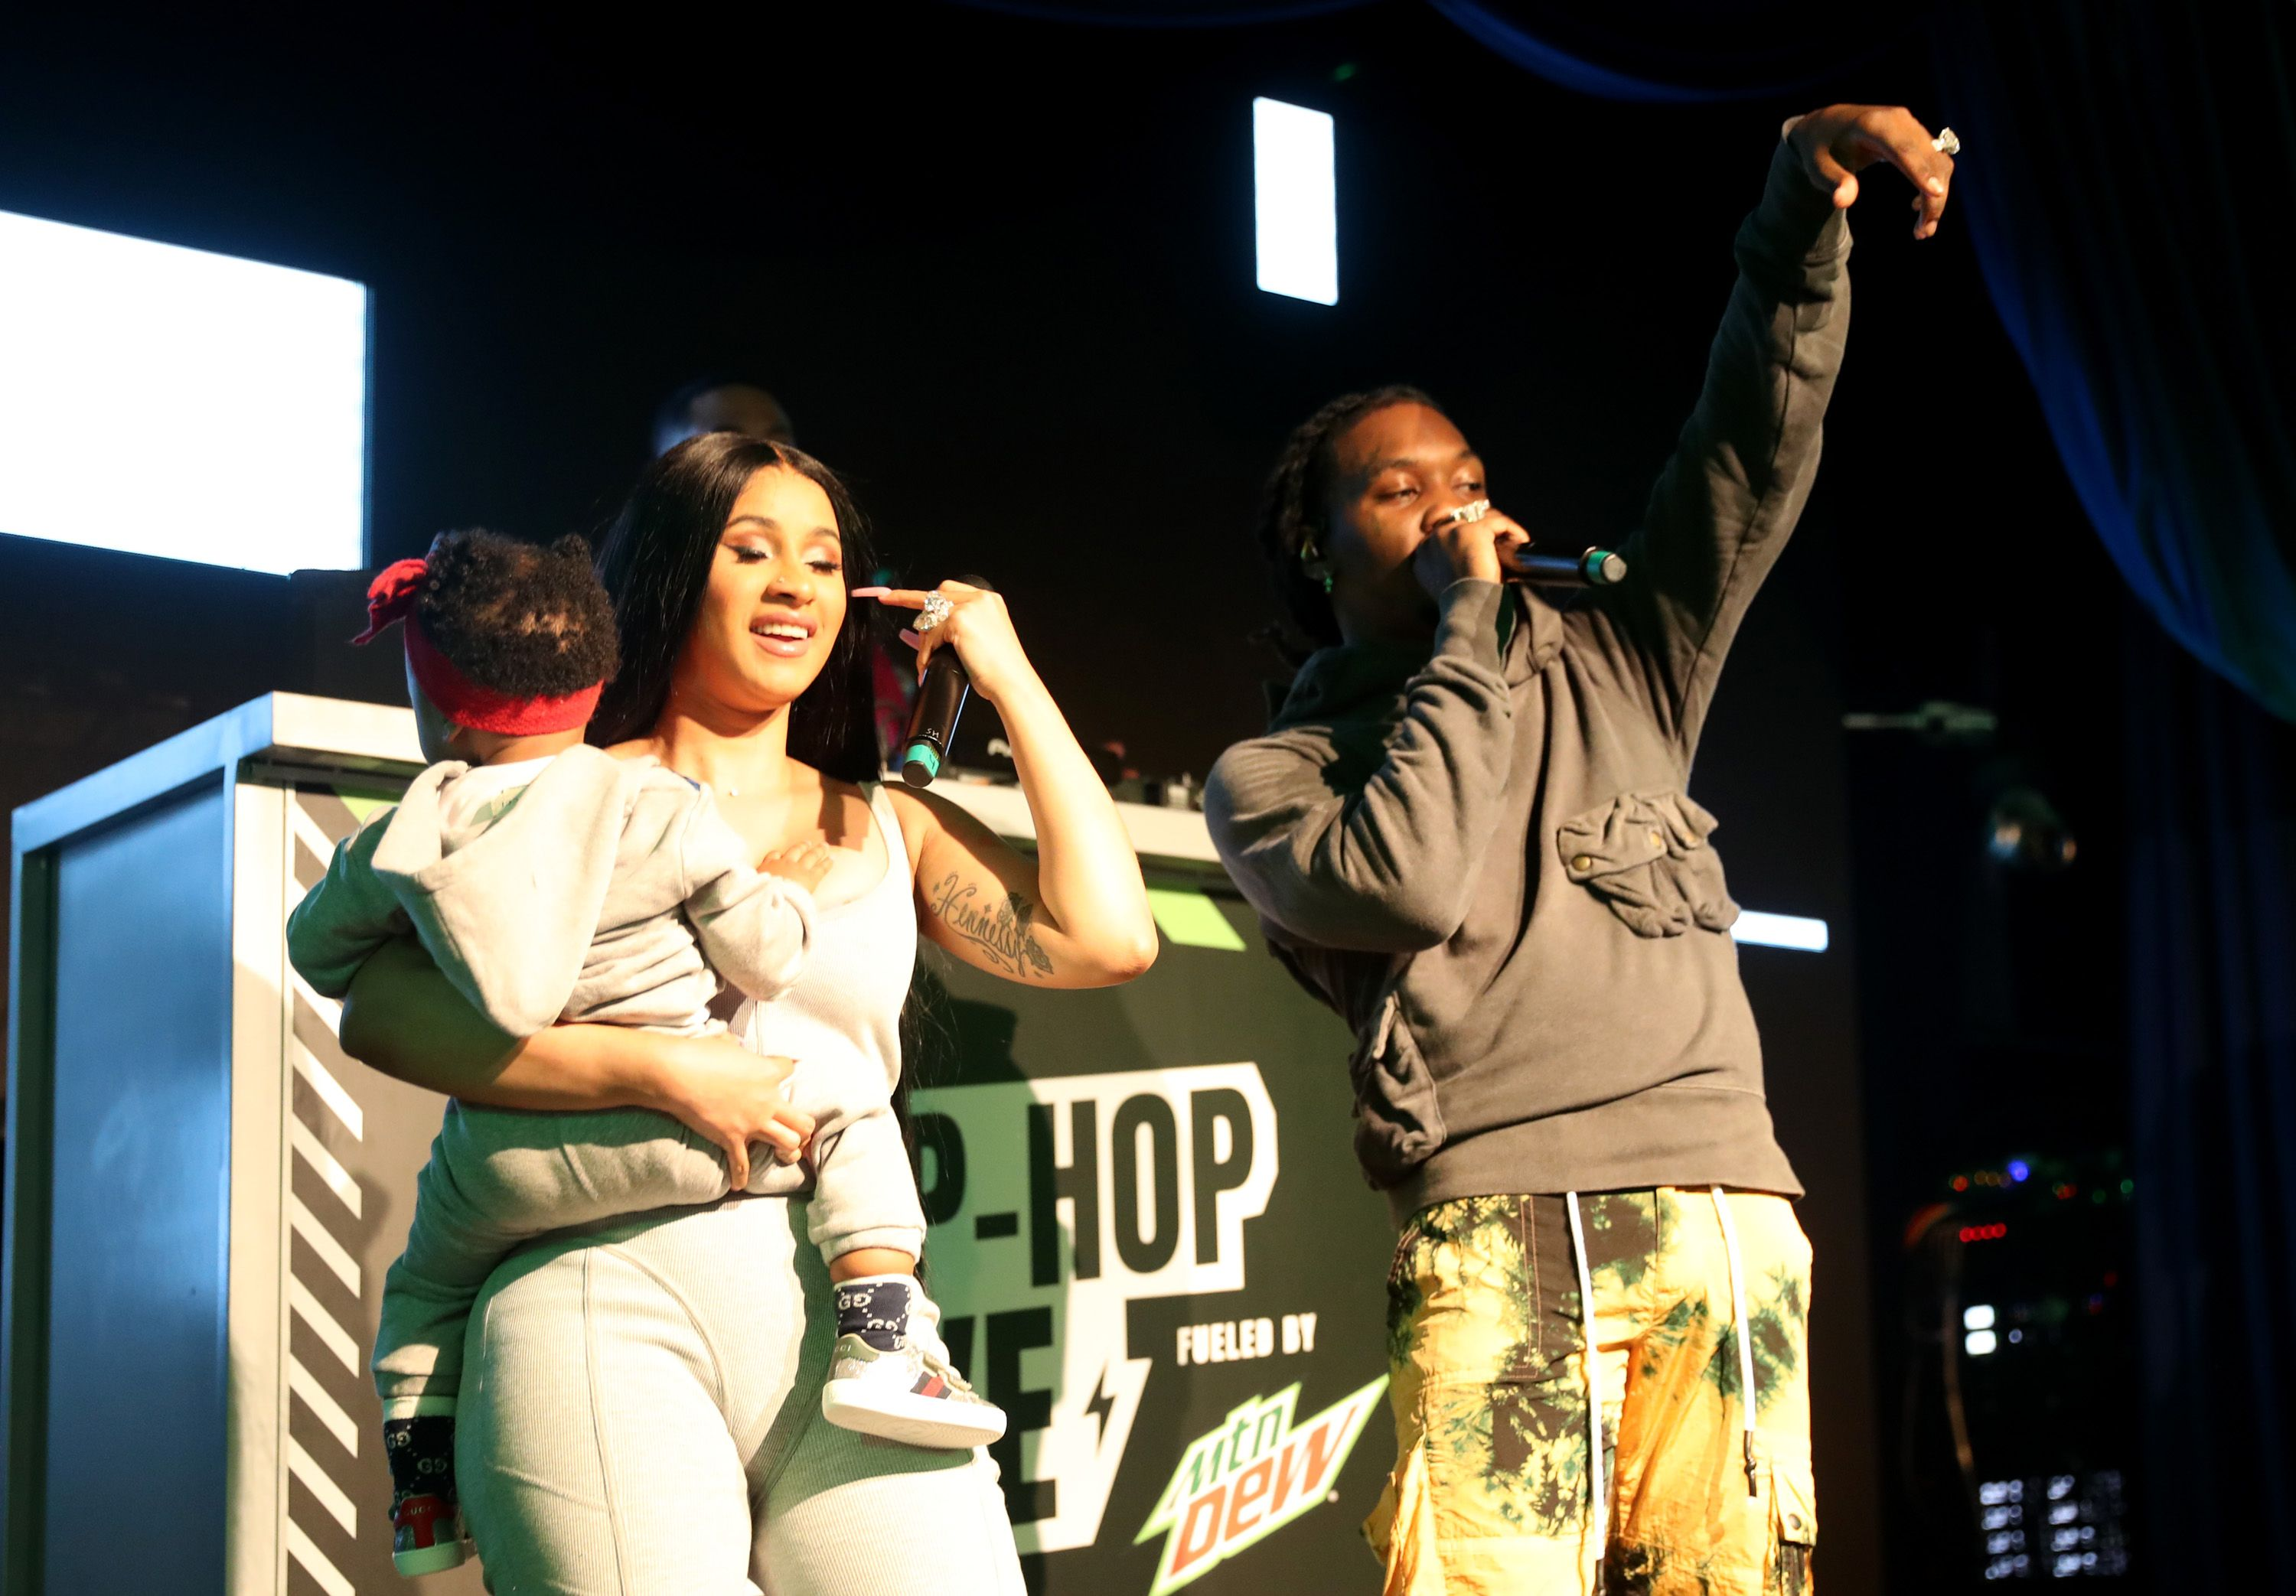 Cardi B with her husband Offset and daughter Kulture.